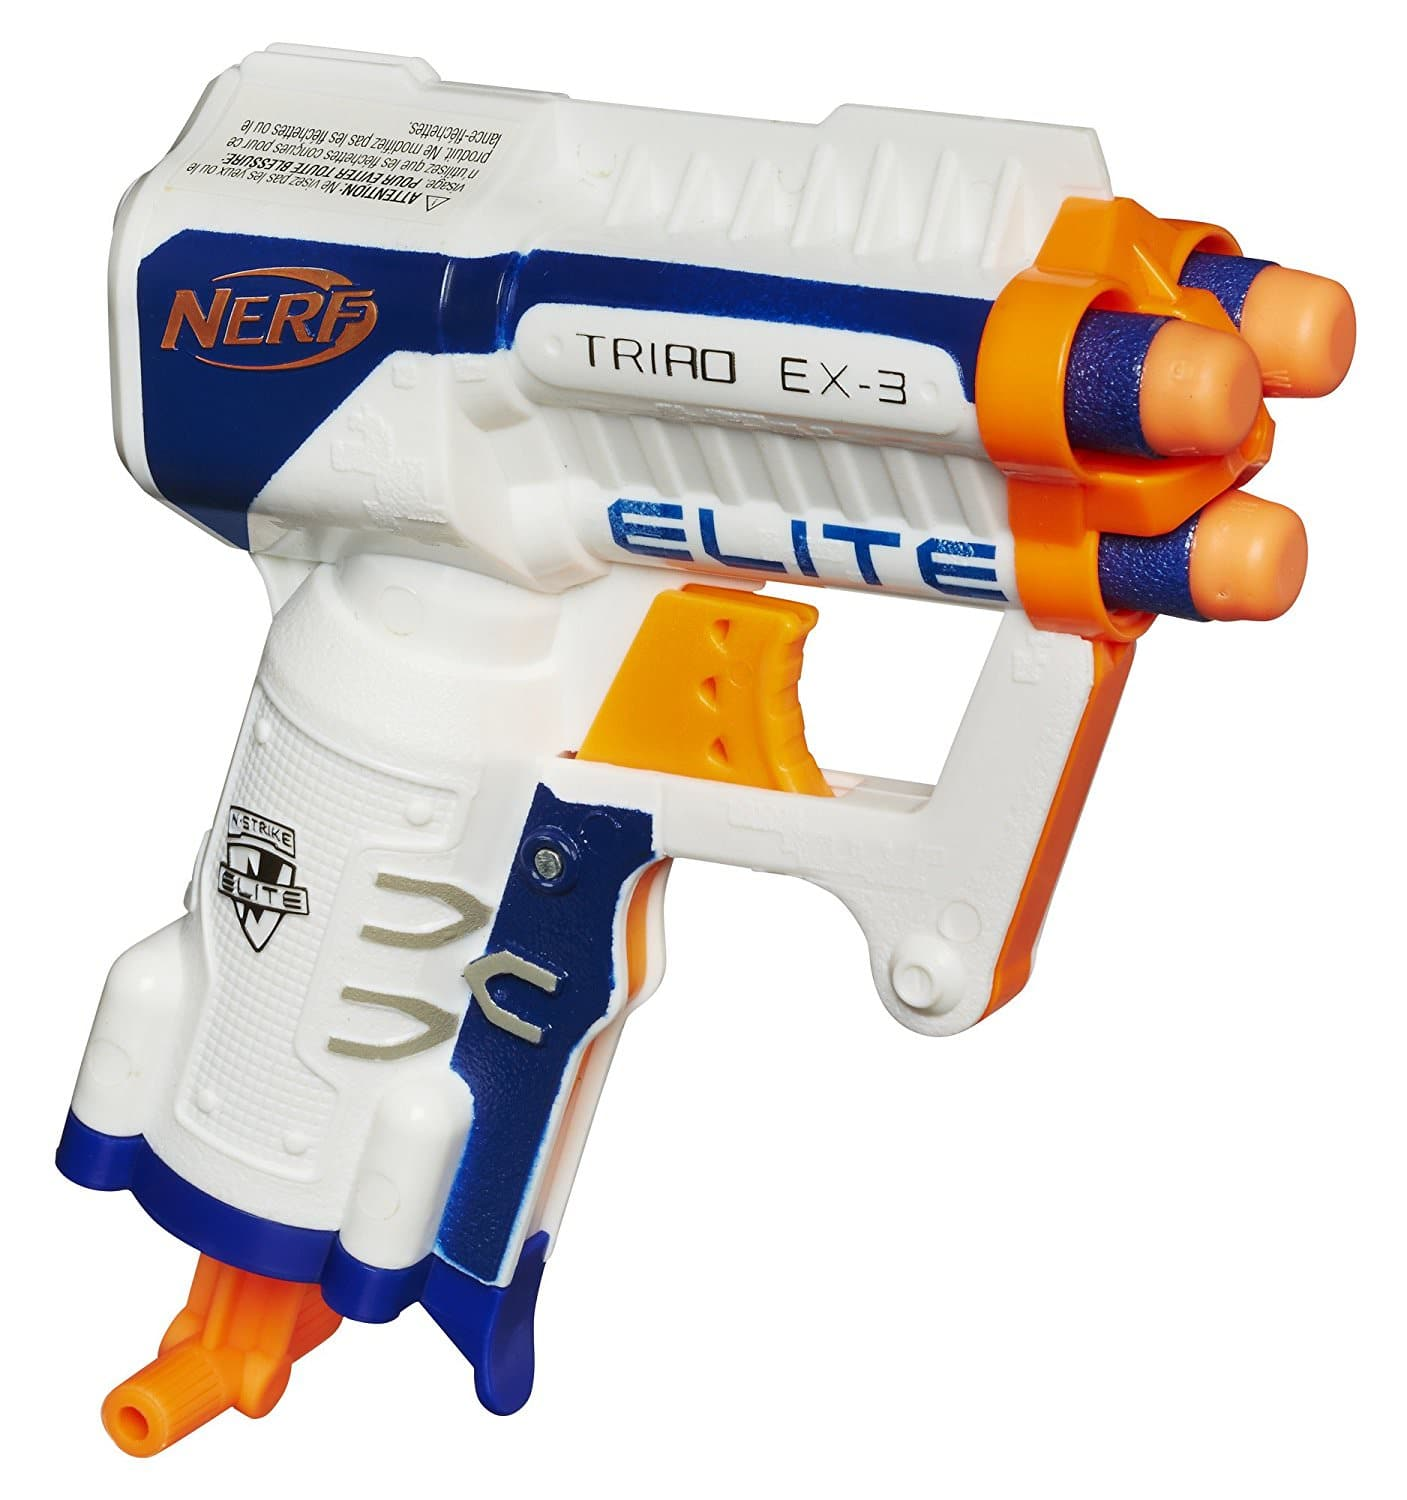 Nerf N-Strike Elite Triad EX-3 for $3.39 w/ in-store pick up at Walmart